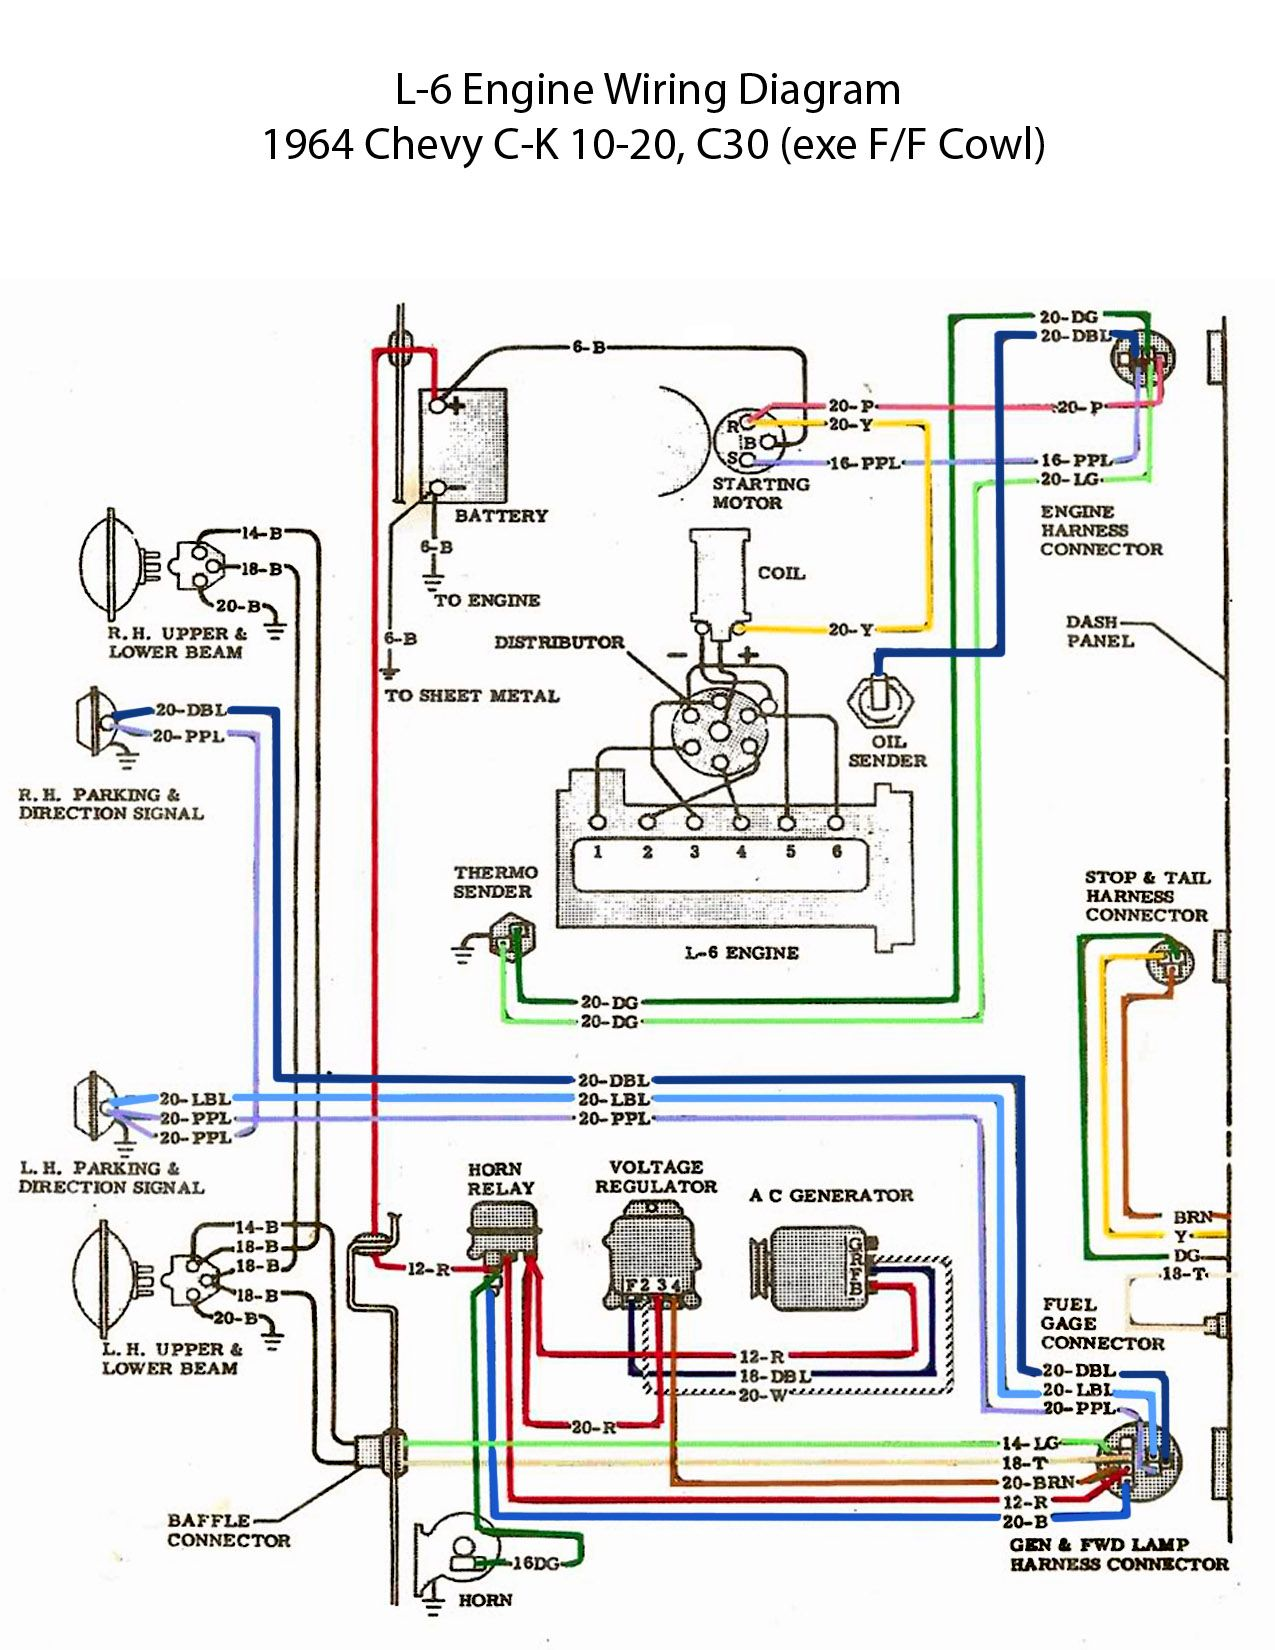 1972 Gmc 6500 Turn Signal Wiring Diagram 1970 Plymouth Images Gallery